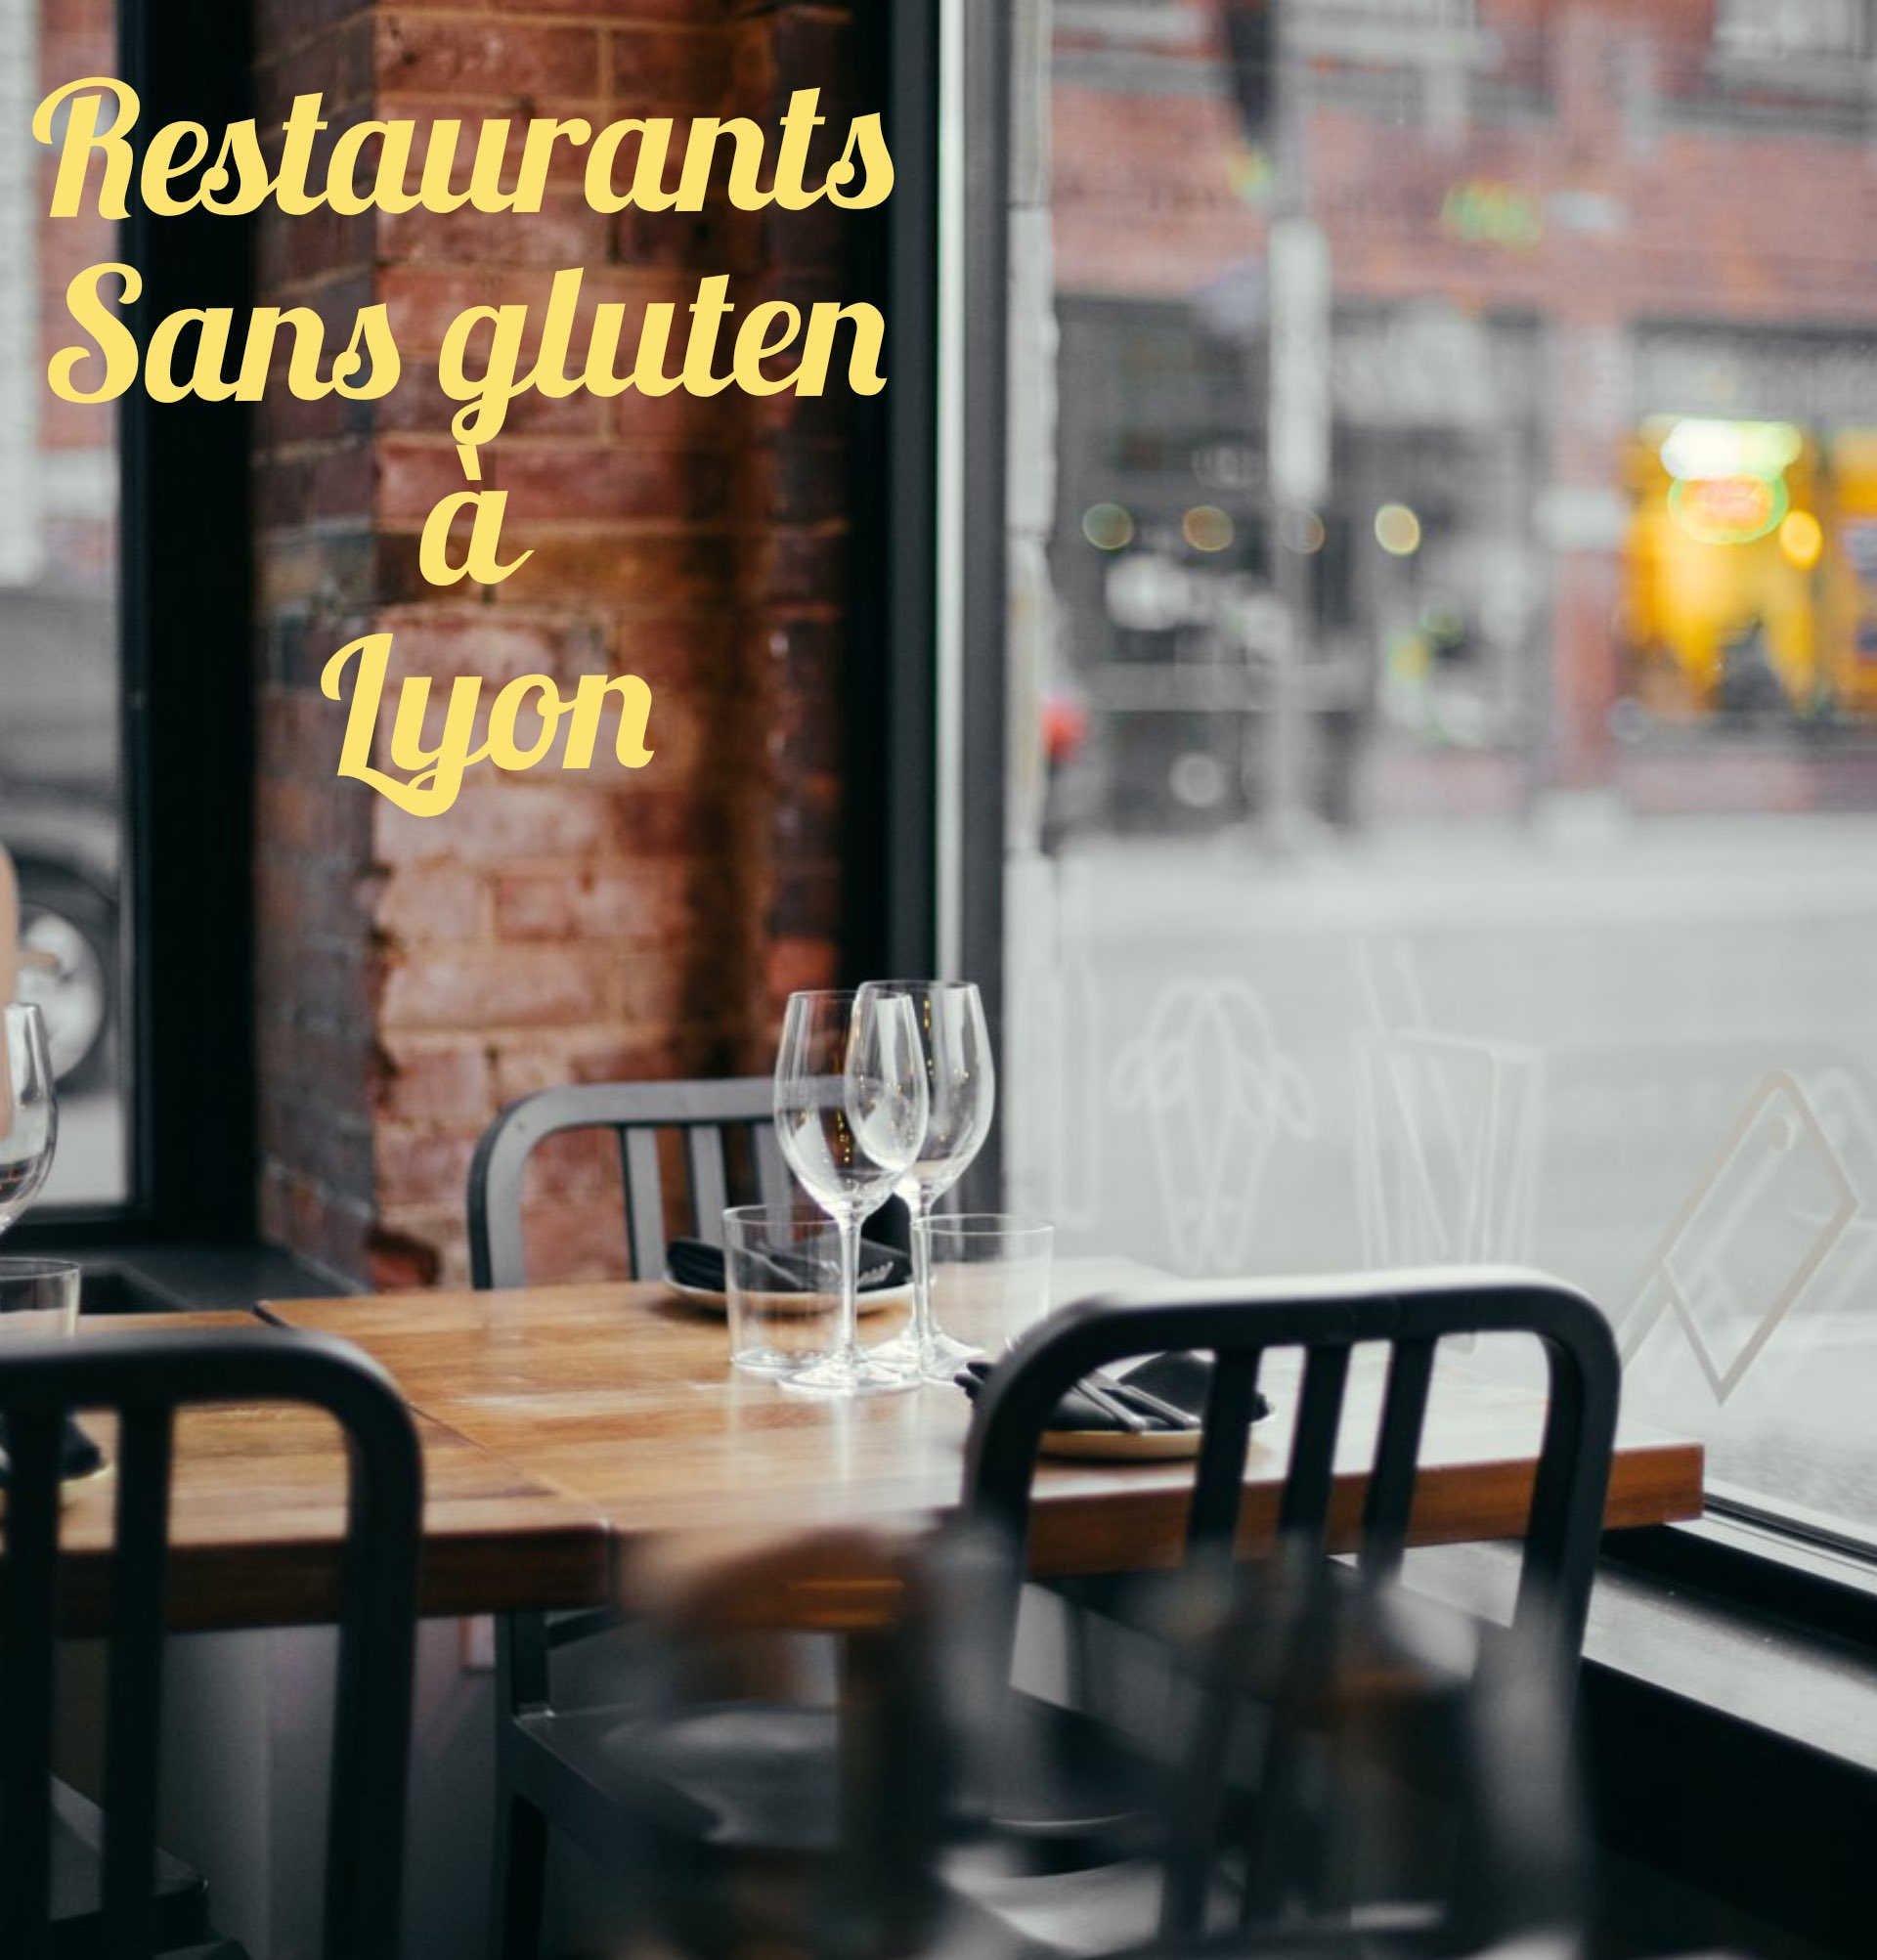 restaurants sans gluten a lyon la fee sans gluten. Black Bedroom Furniture Sets. Home Design Ideas